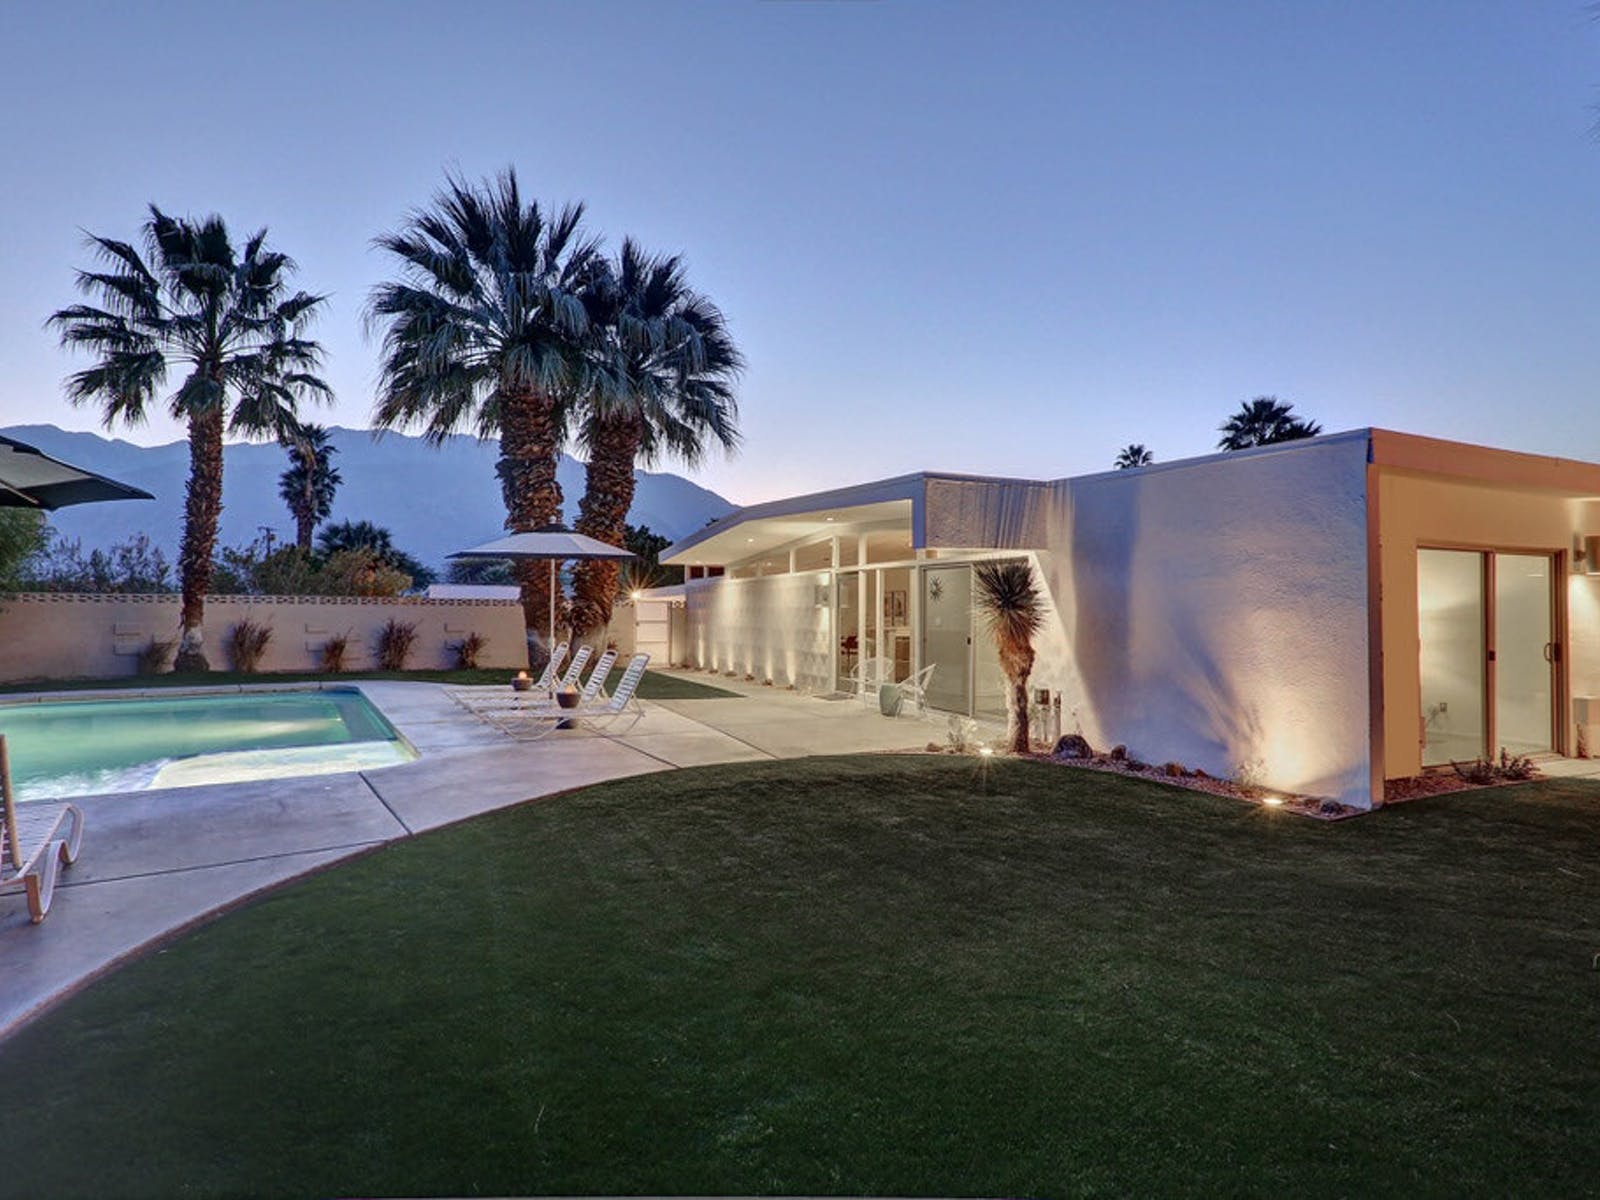 A vacation rental with an outdoor pool and palm trees with modern architecture in Palm Springs, CA.